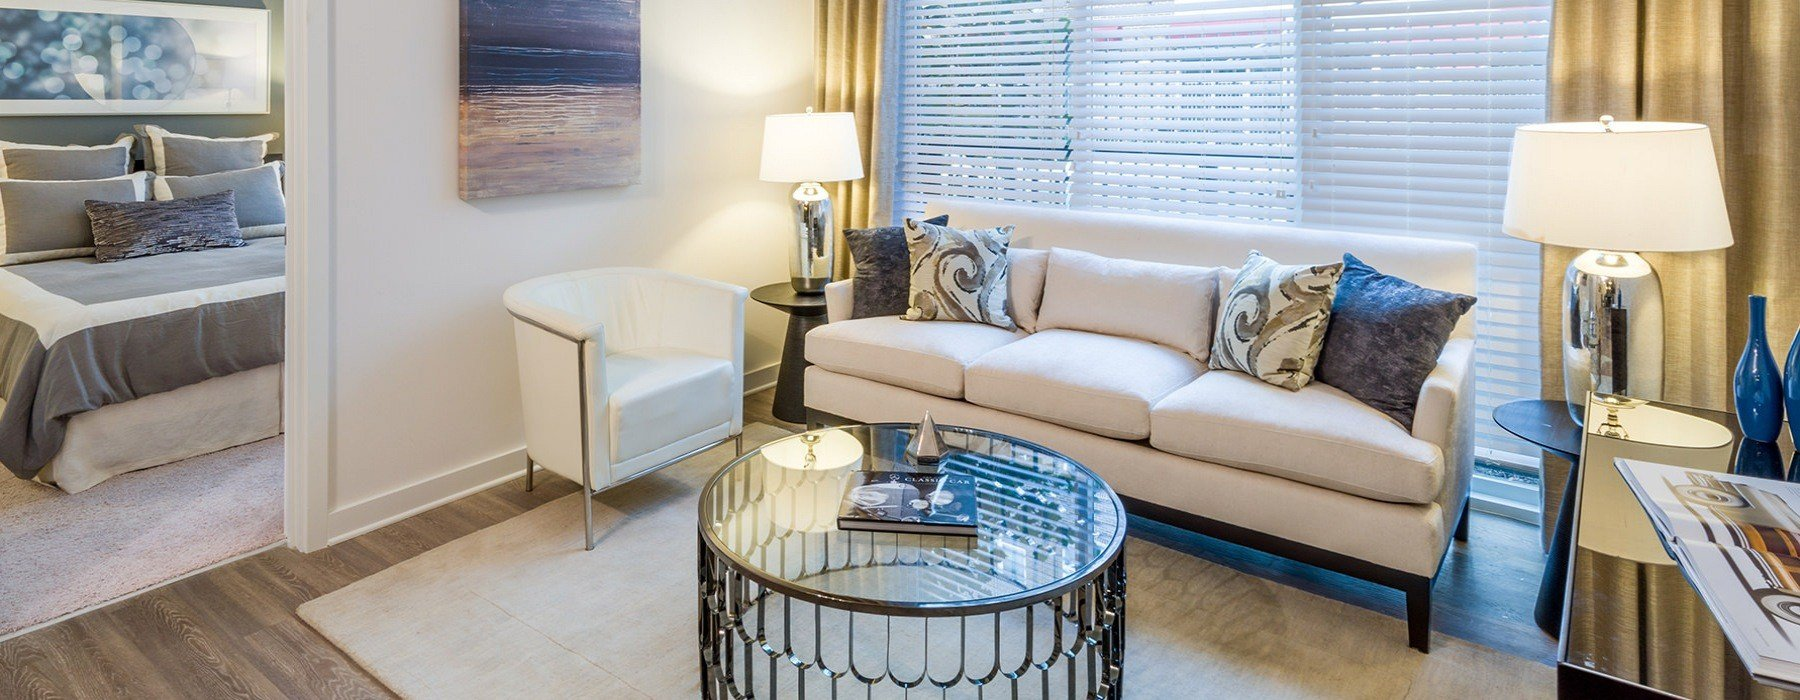 Best A2 Durango Available 1 2 3 Bedroom Apartments In Rockville Md Bainbridge Shady Grove Metro With Pictures